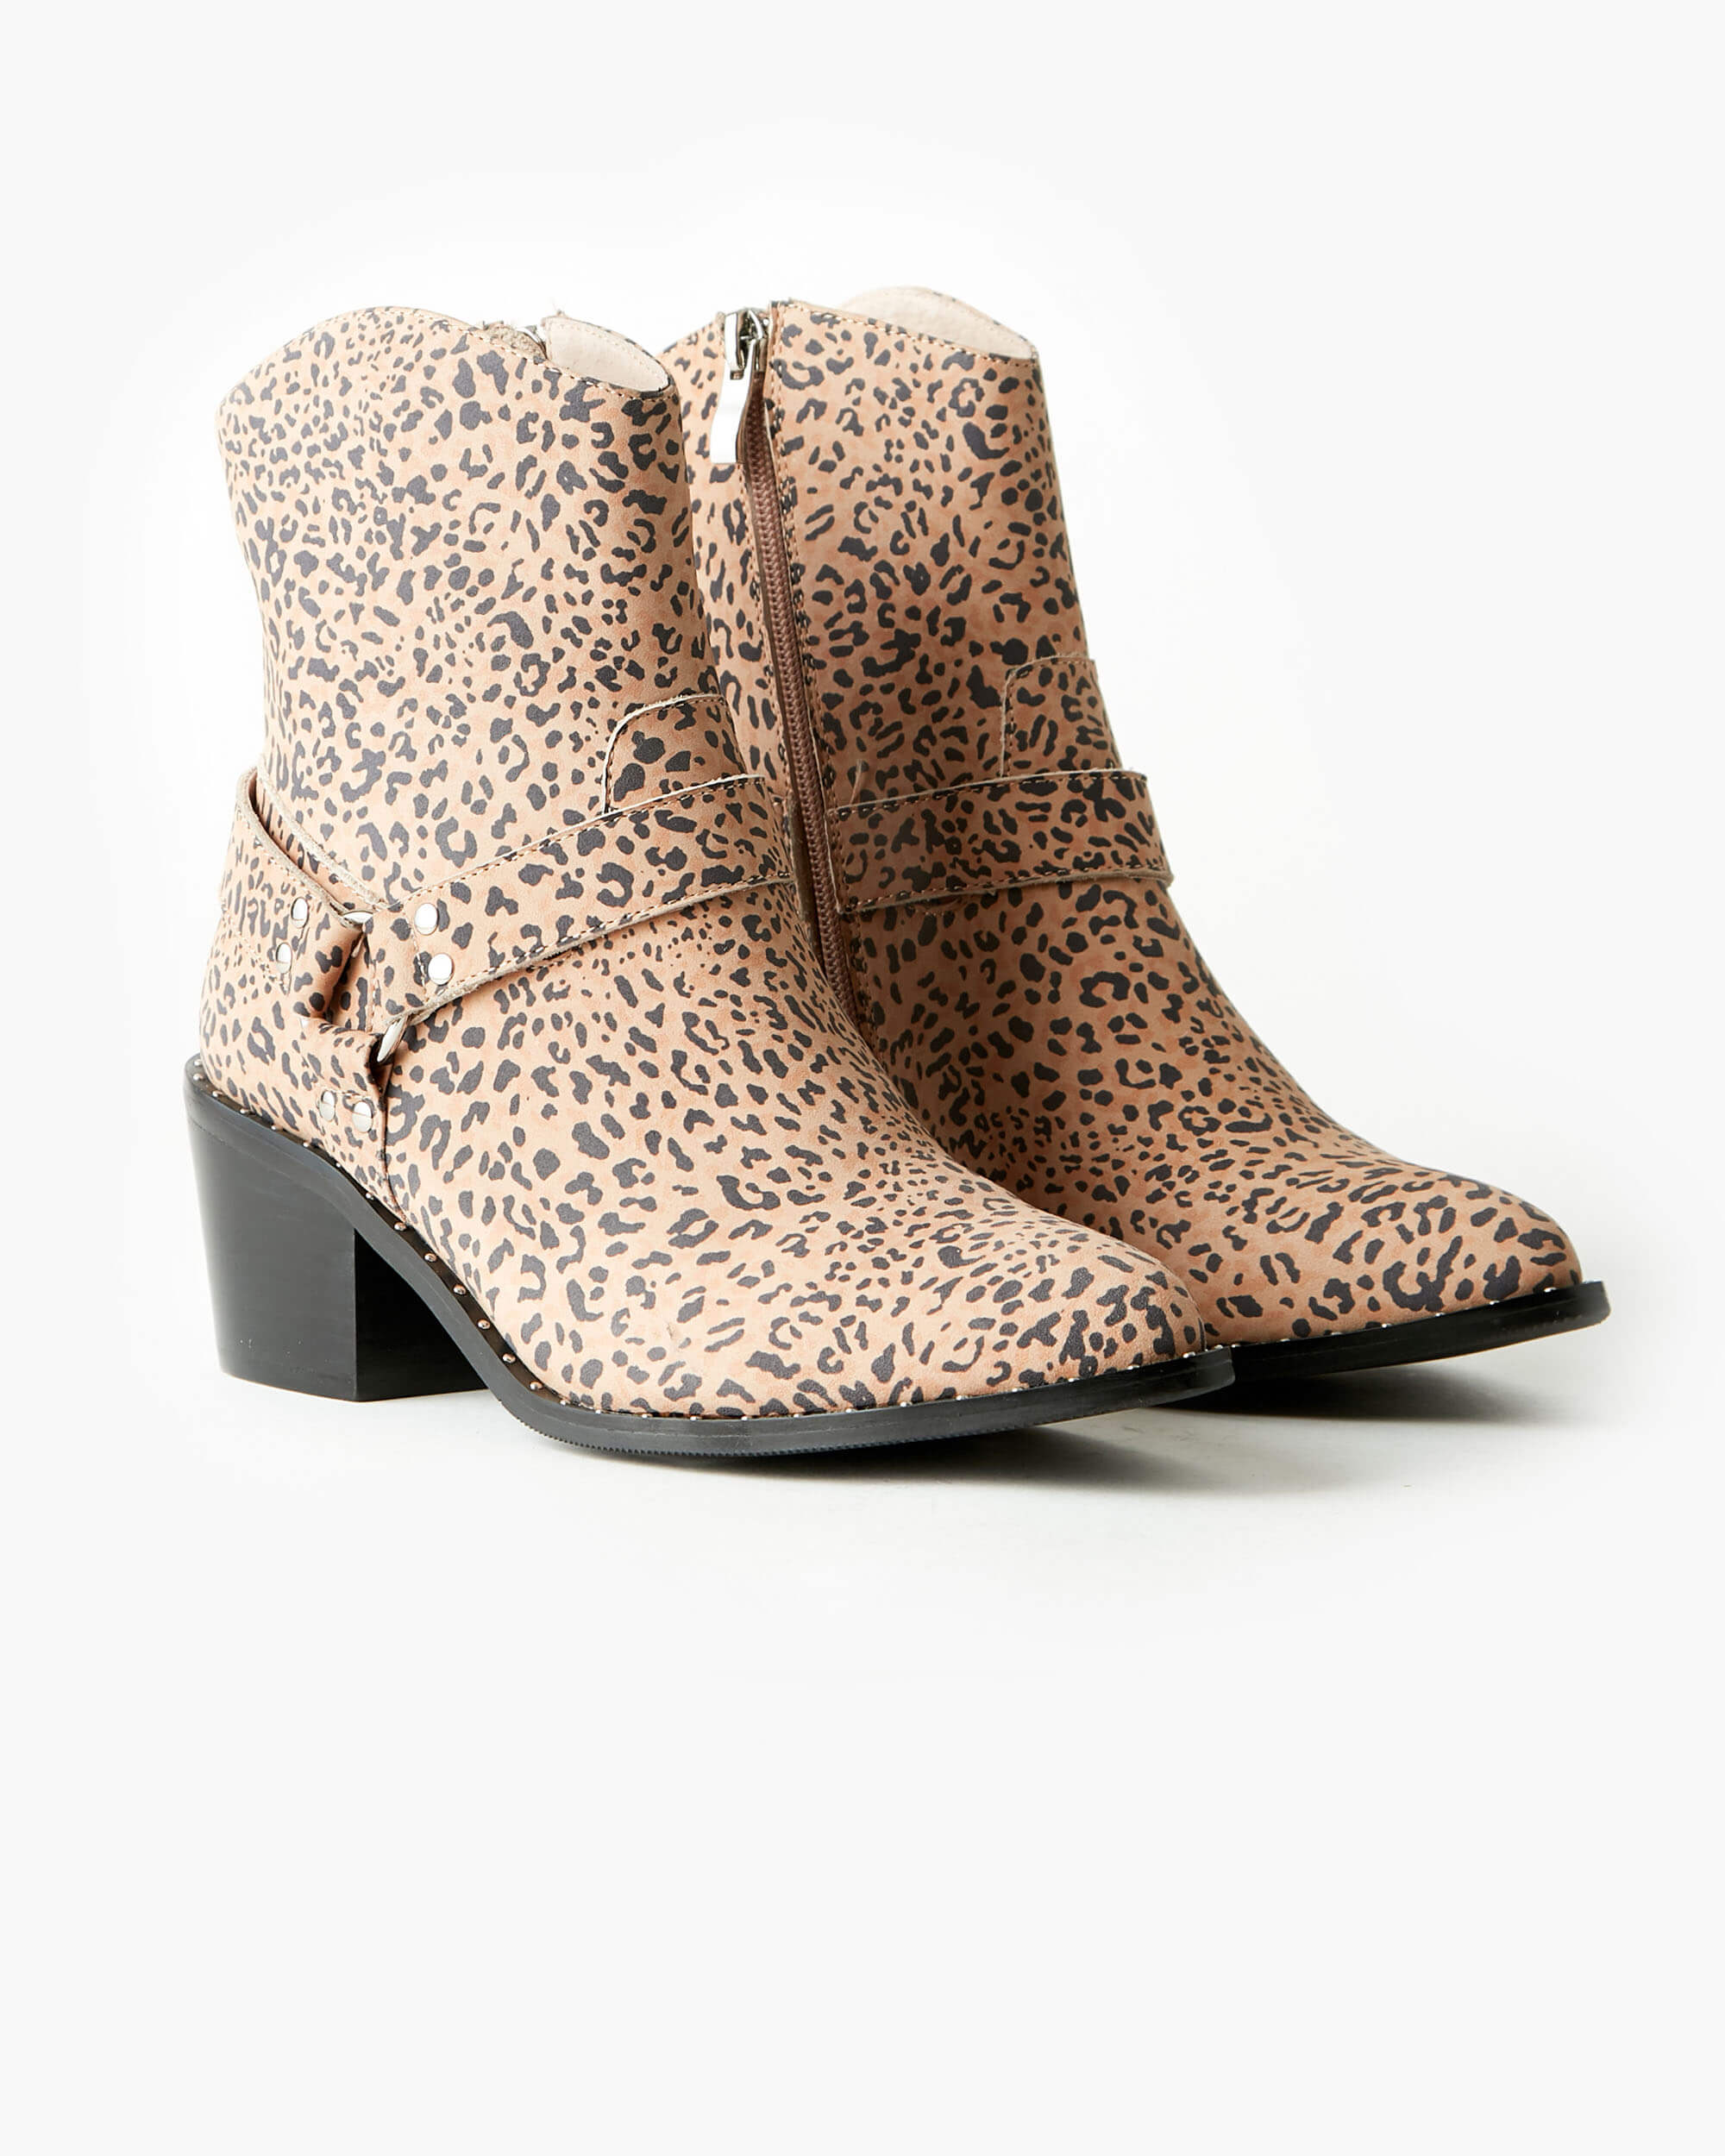 Western Leather Boot - Tan Leopard